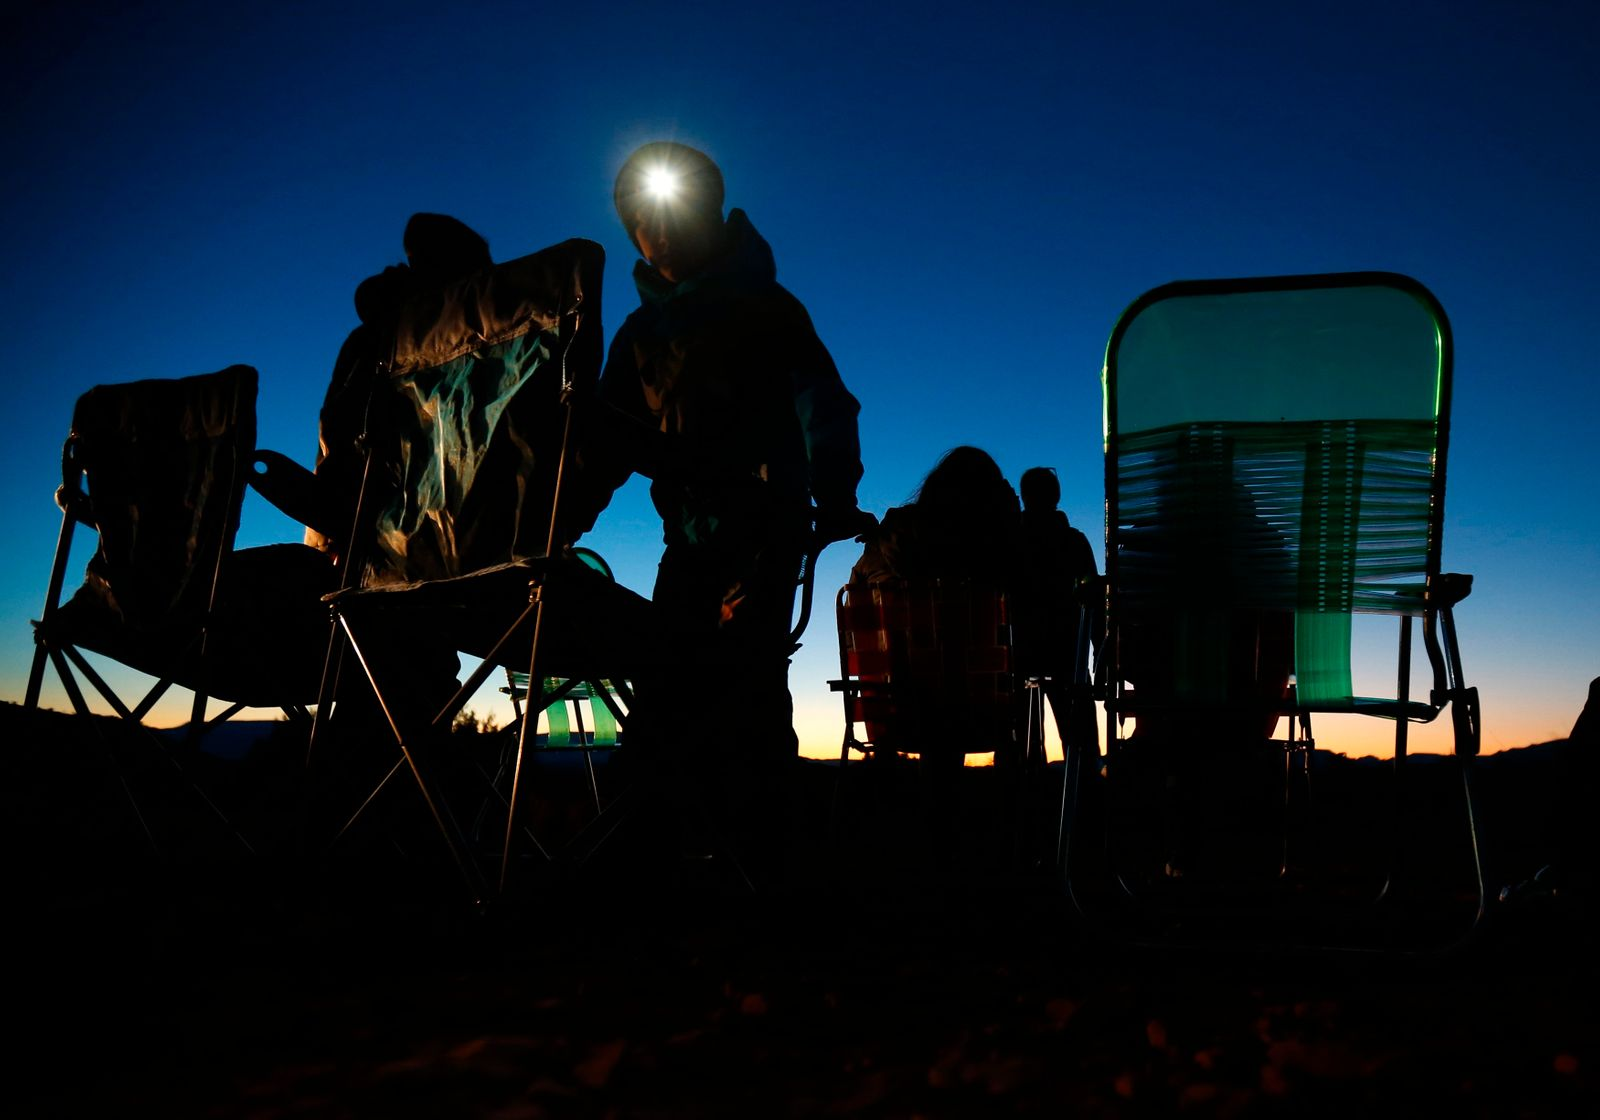 Spectators set up lawn chairs in hopes of seeing an UFO during an UFO tour in the desert outside Sedona, Arizona